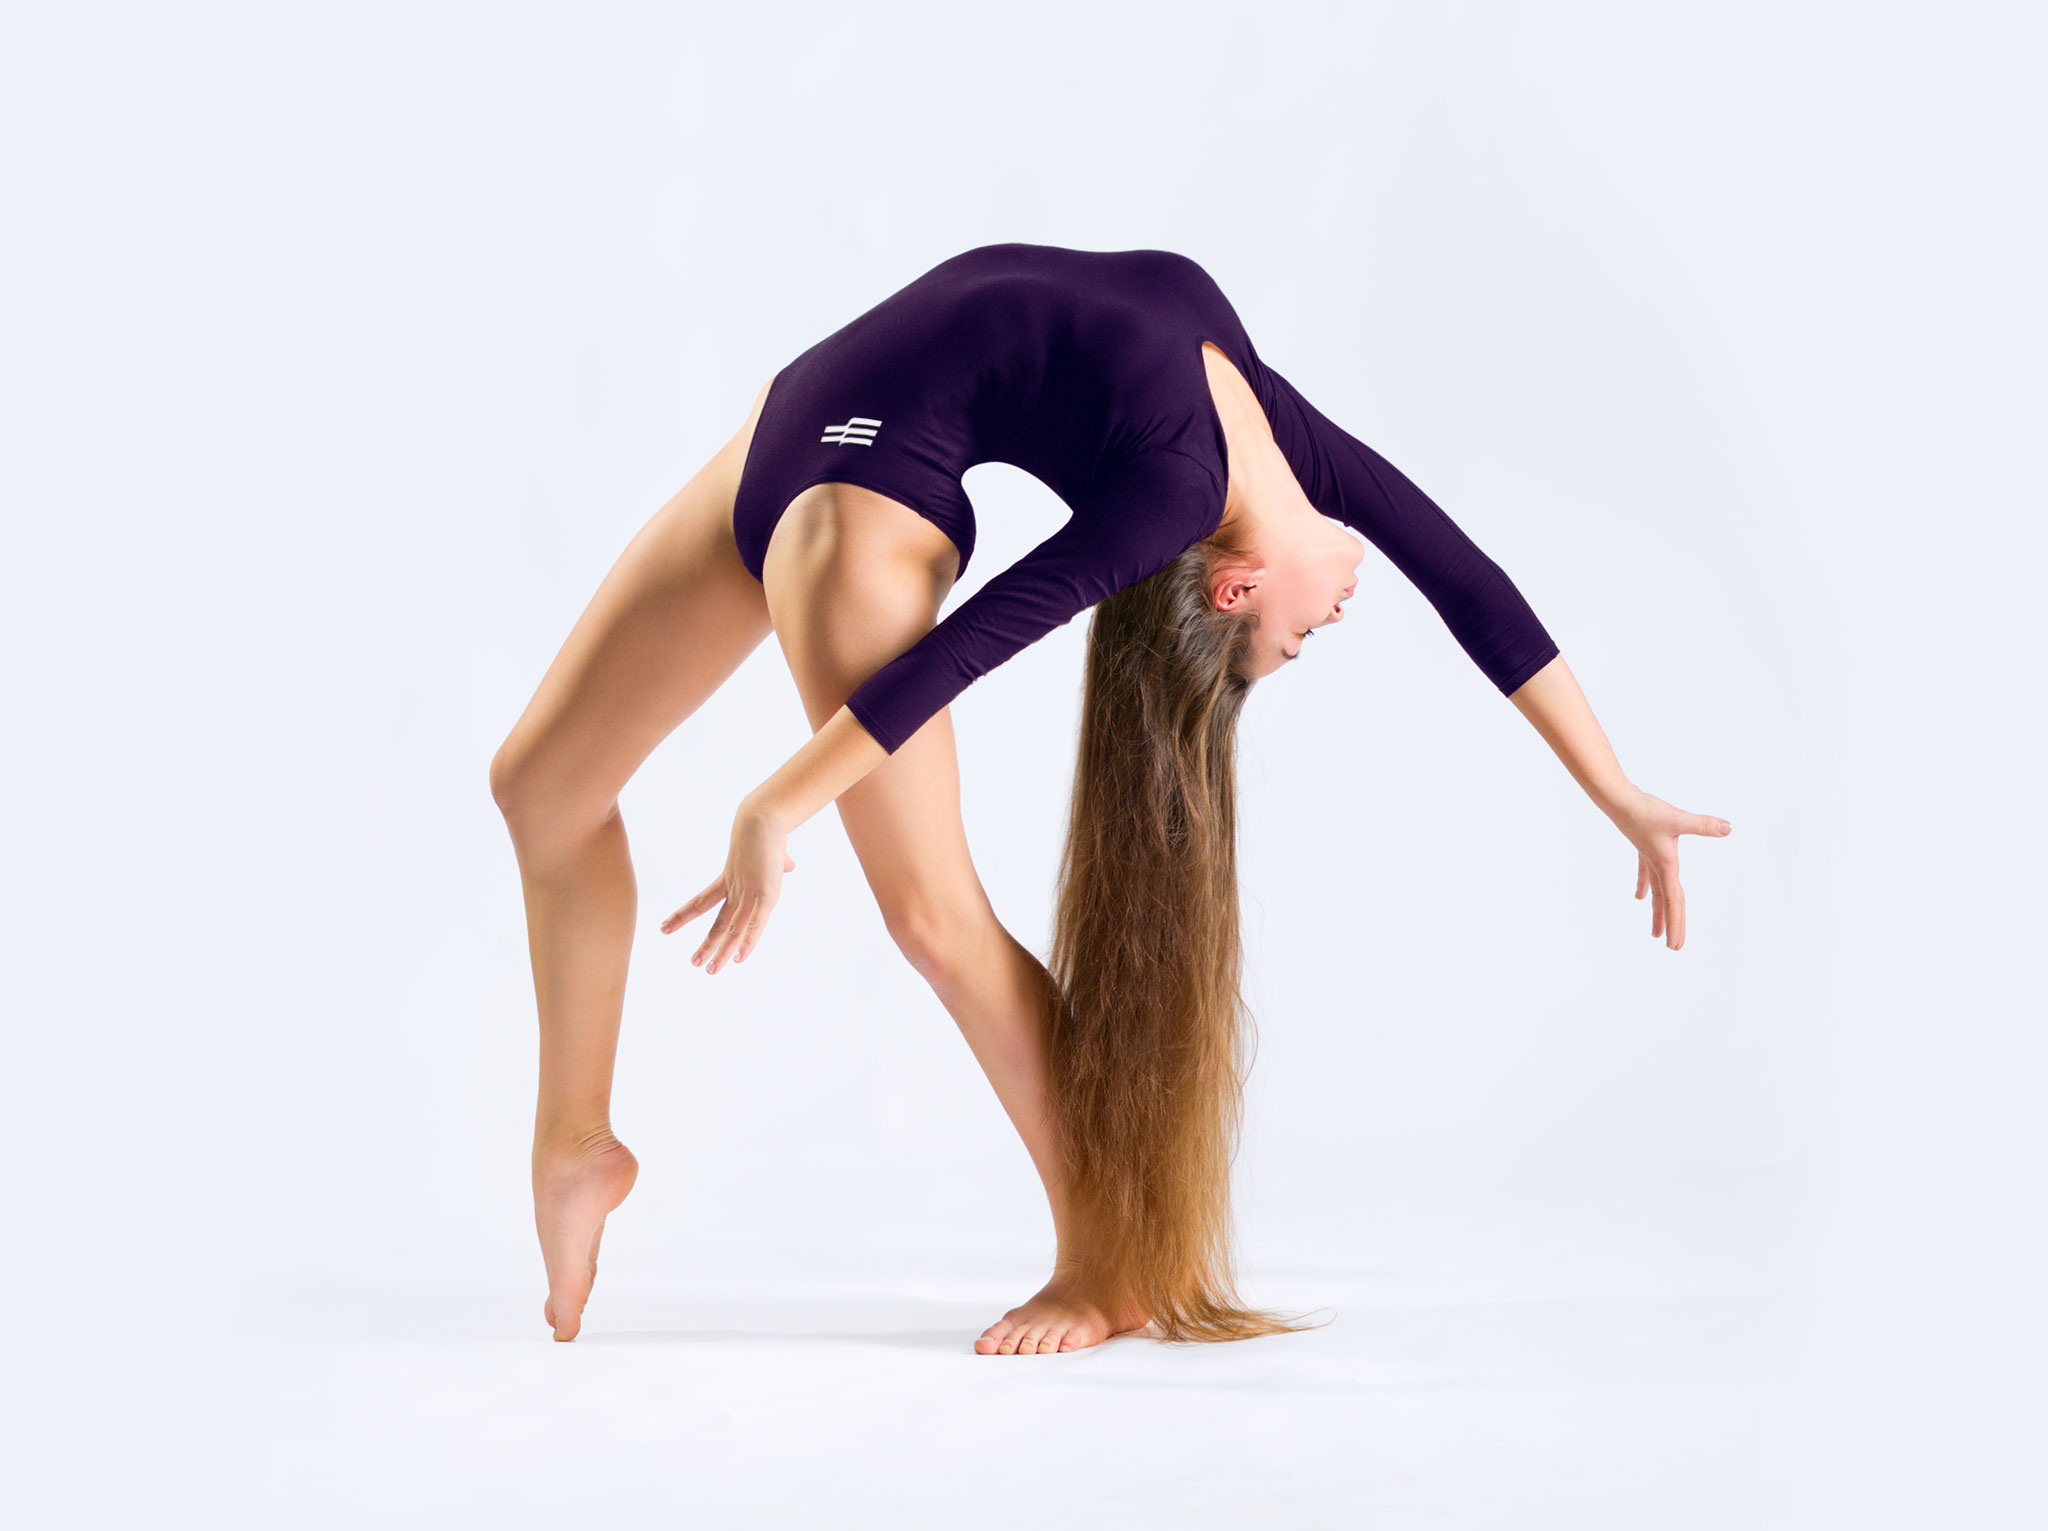 Égal Dance Wear photo of branded leotard on female model